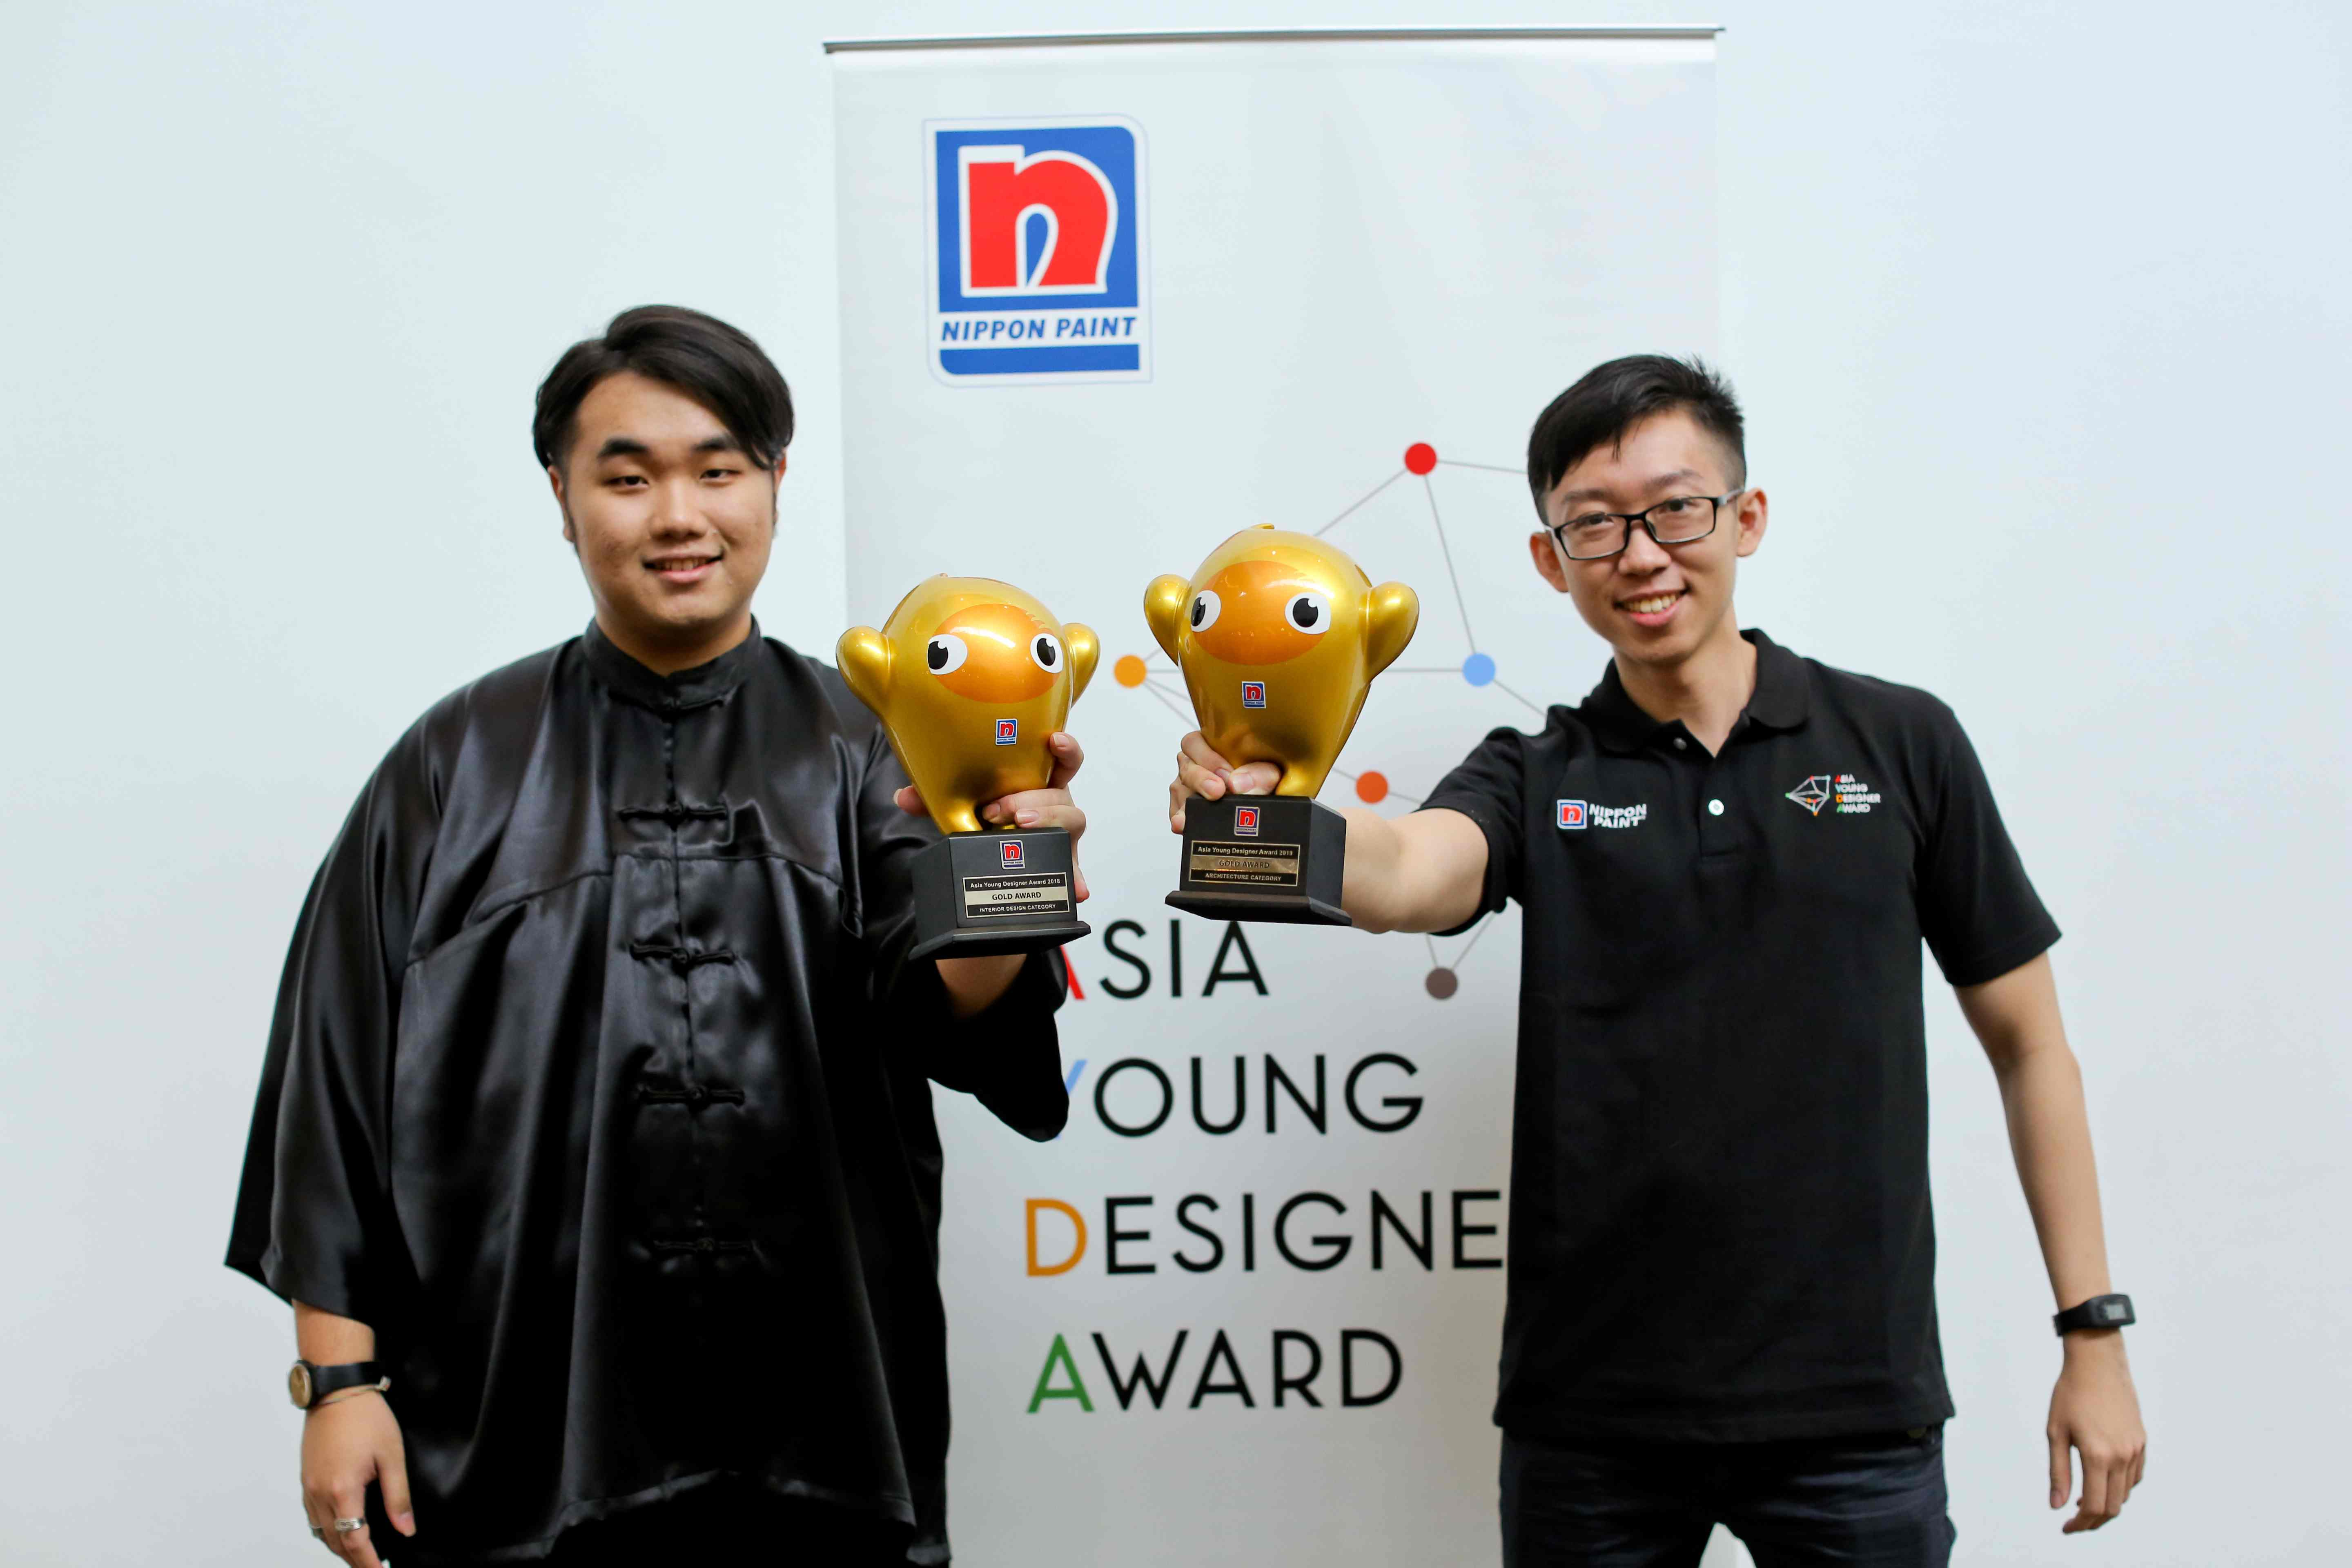 feb4aacc0745 MALAYSIAN WINNERS OF PRESTIGIOUS ASIA YOUNG DESIGNER AWARD 2018 TO COMPETE  REGIONALLY FOR PLACE IN HARVARD PROGRAMME